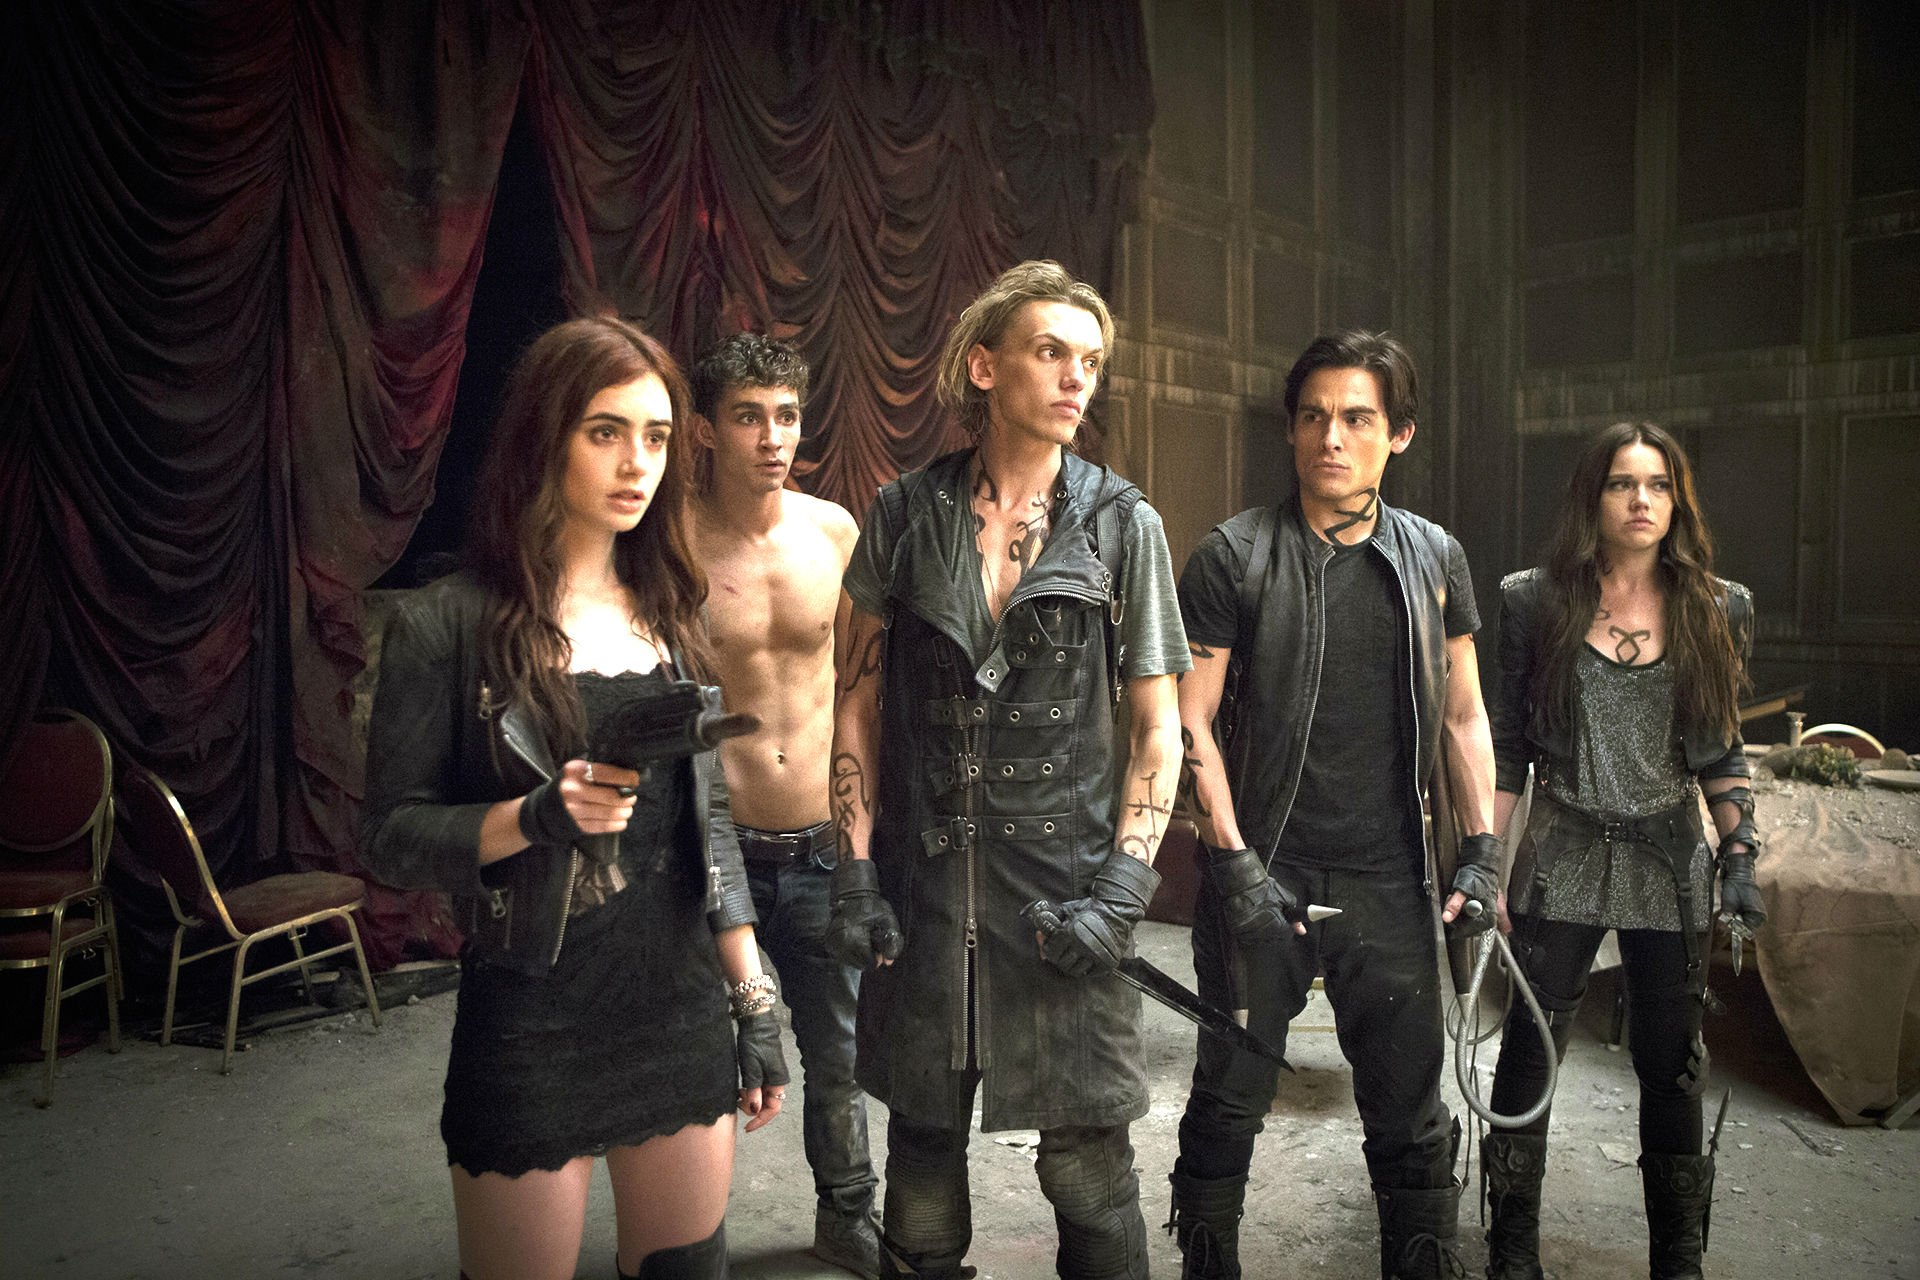 mortal instruments city of bones action adventure sci-fi fantasy